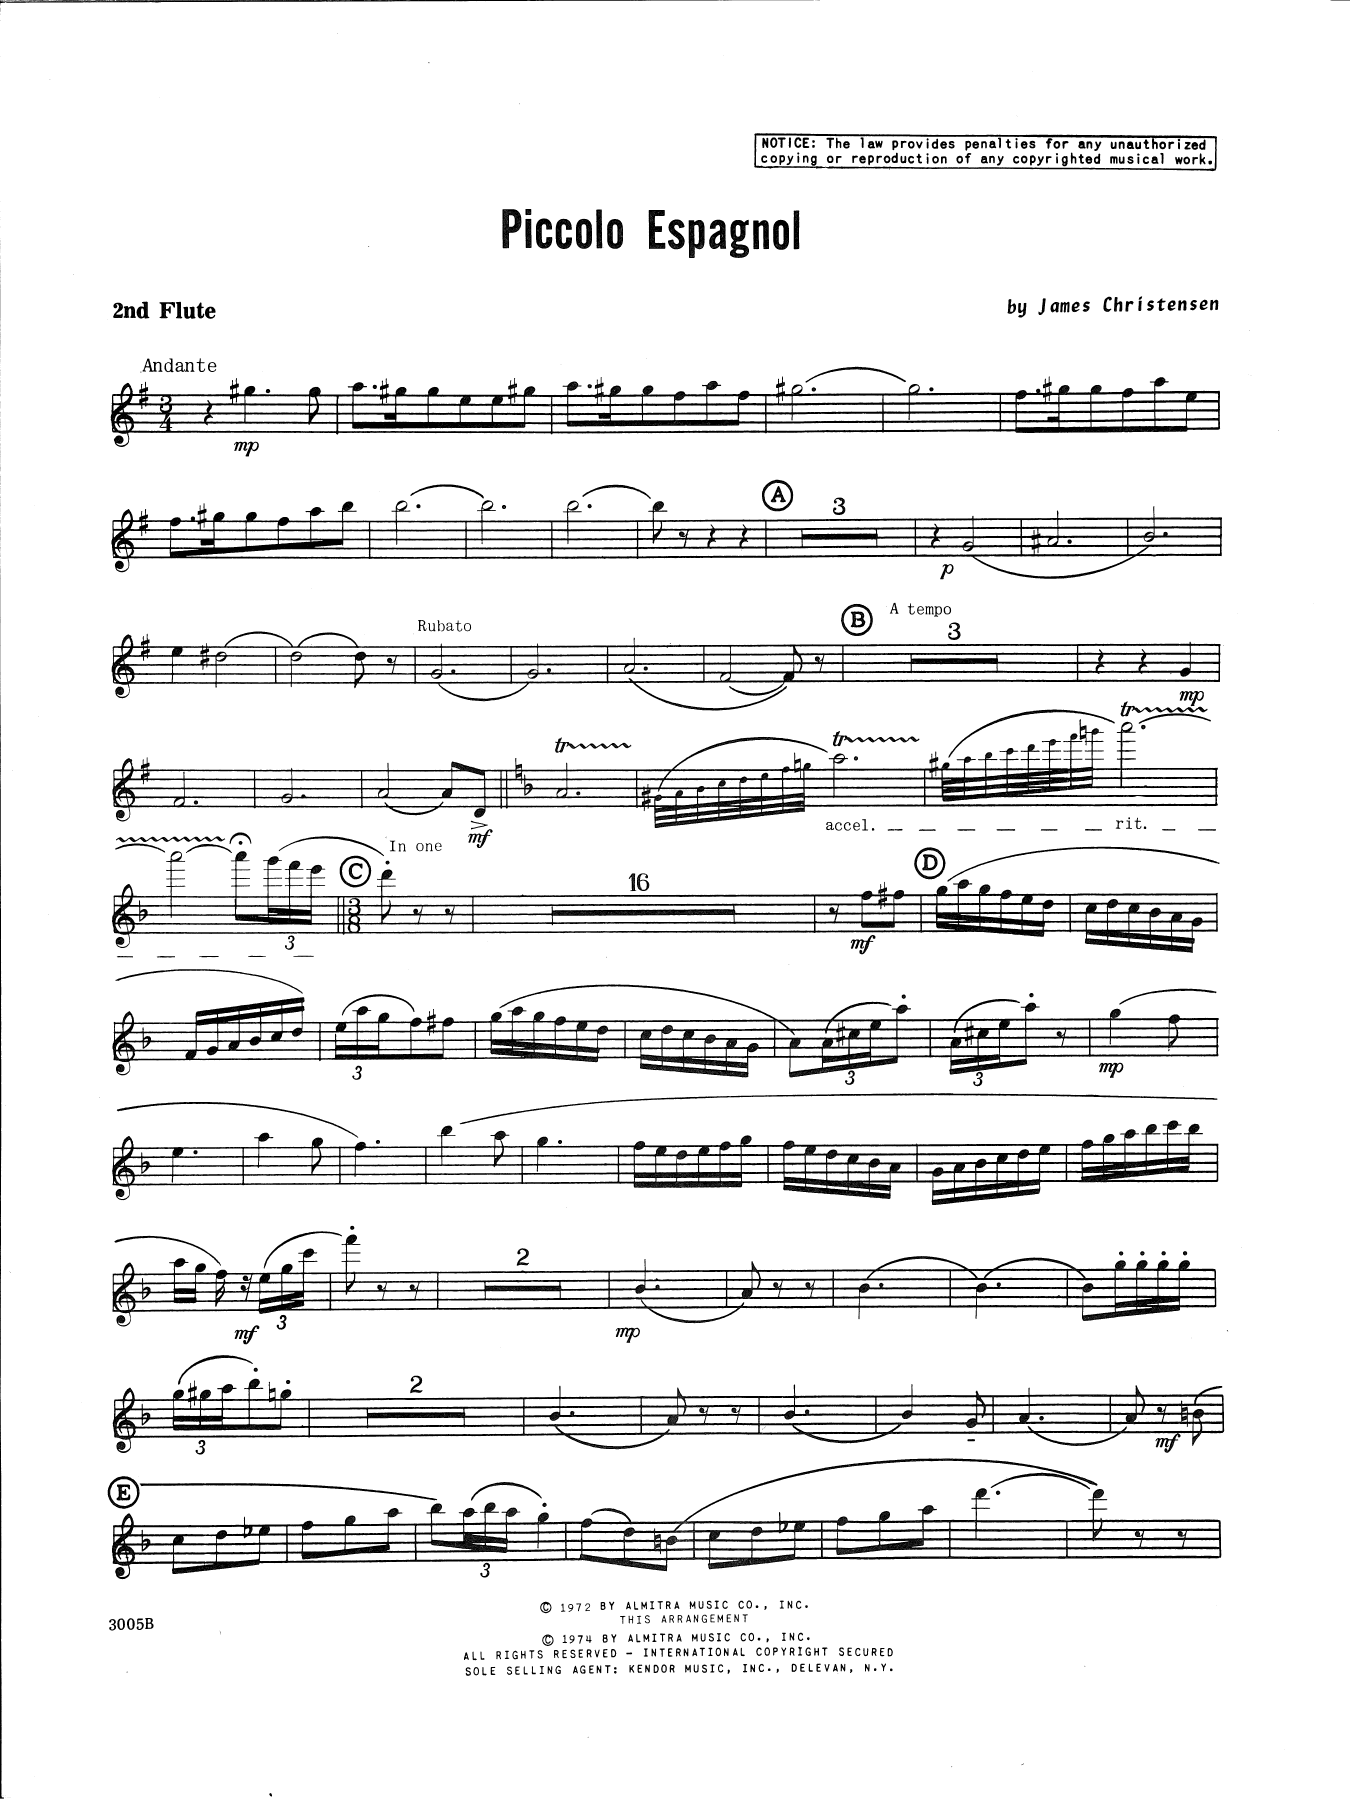 James Christensen Piccolo Espagnol - 2nd Flute sheet music notes and chords. Download Printable PDF.